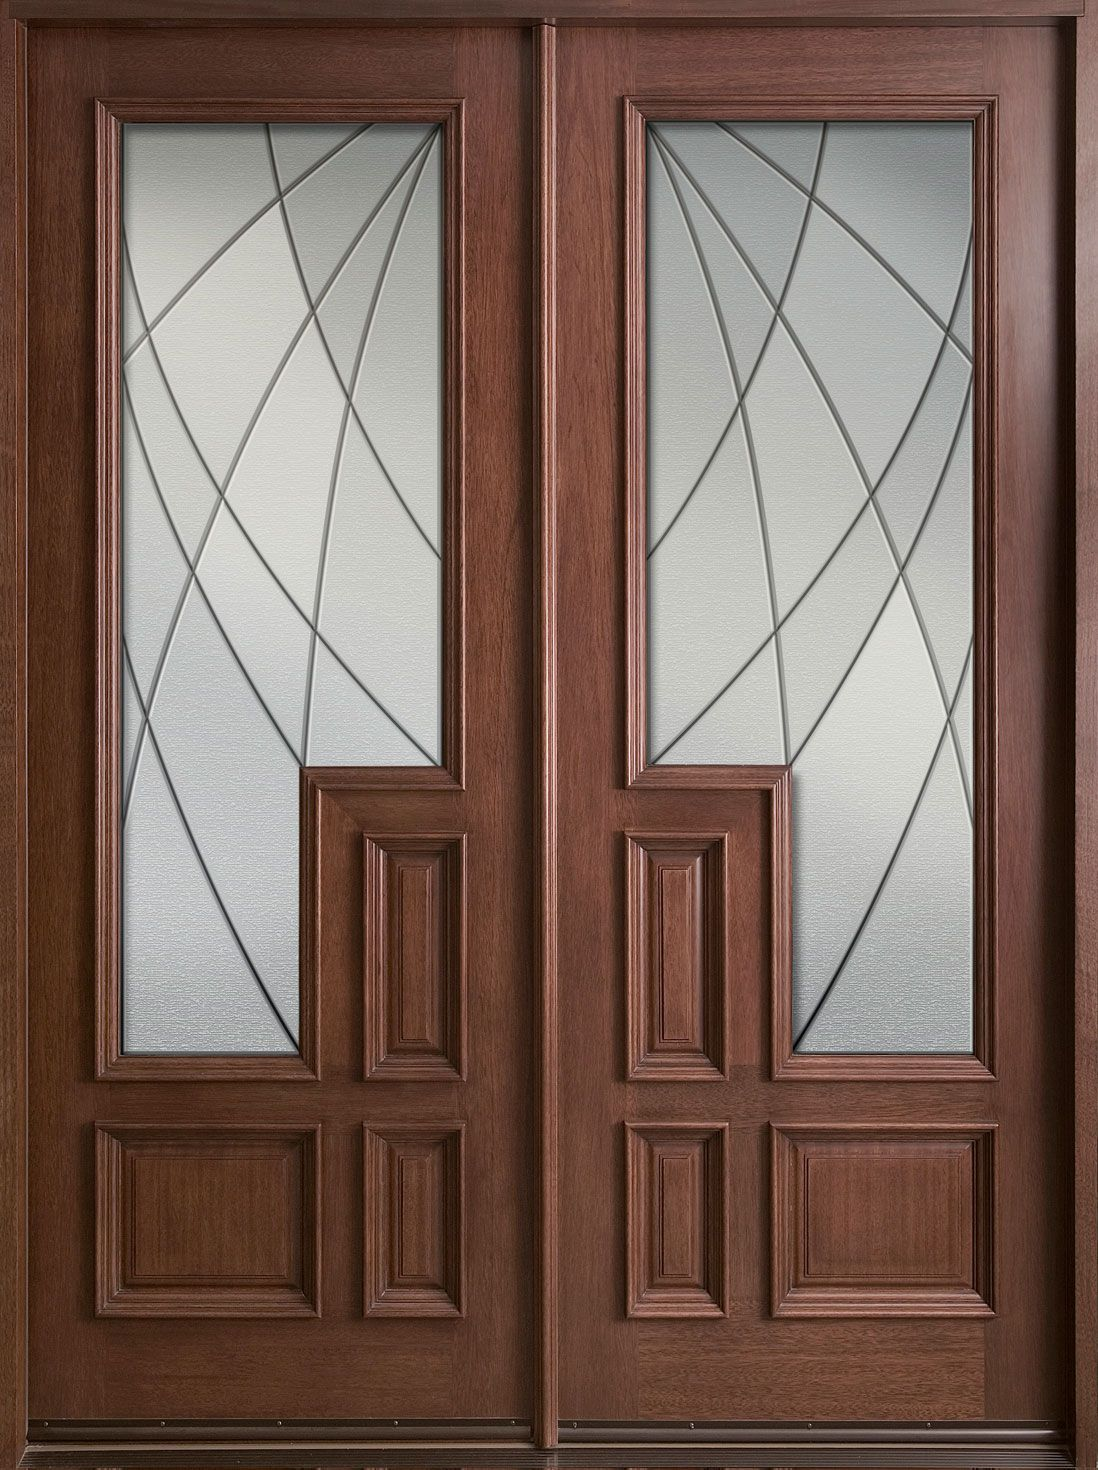 Inspiring double fiberglass entry door as furniture for for Wooden outside doors